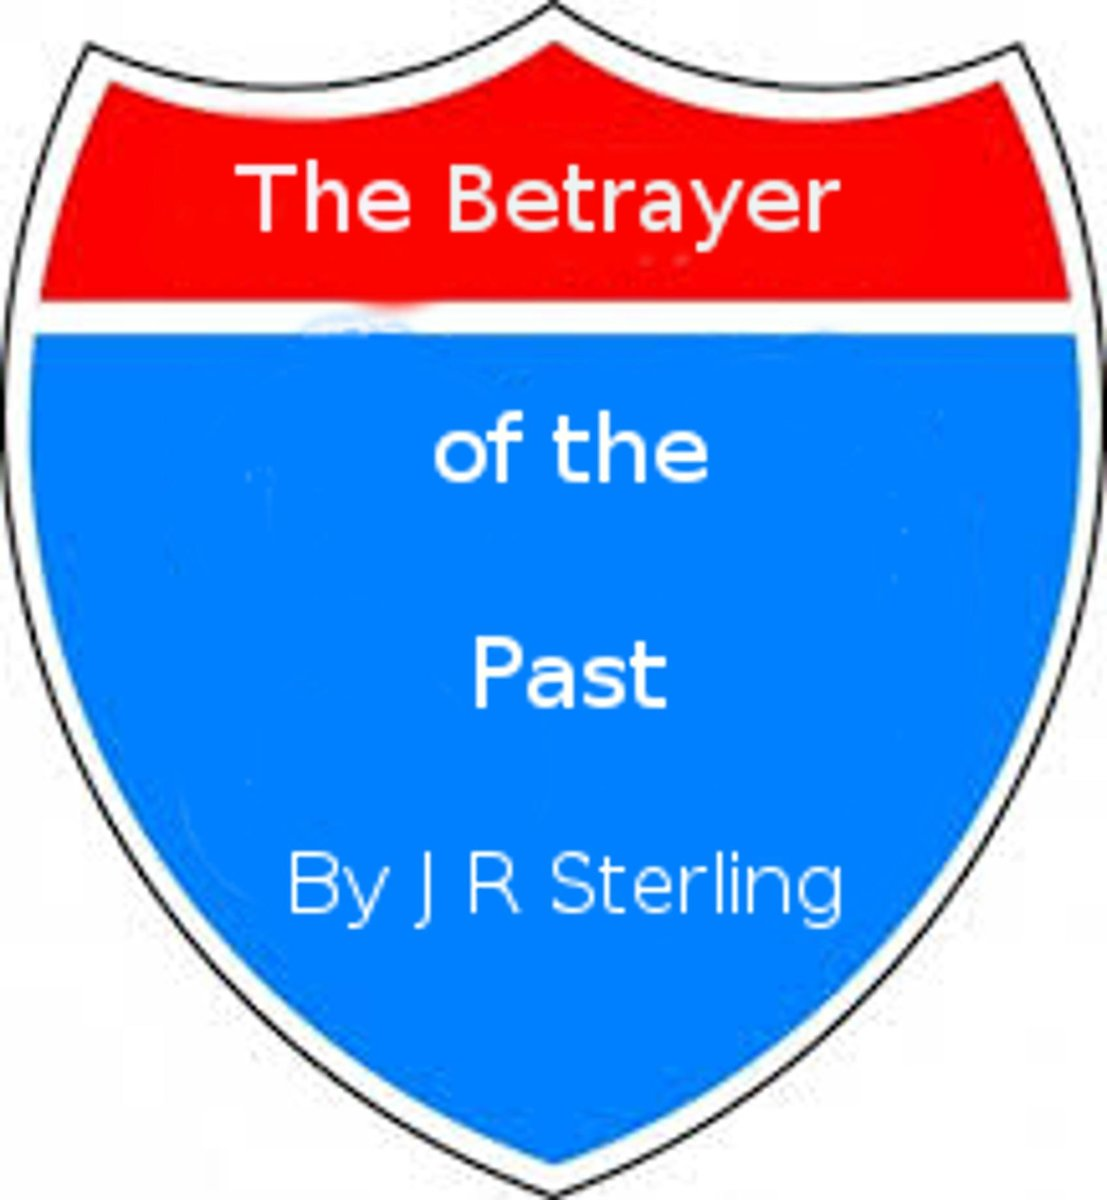 The Betrayer of the Past